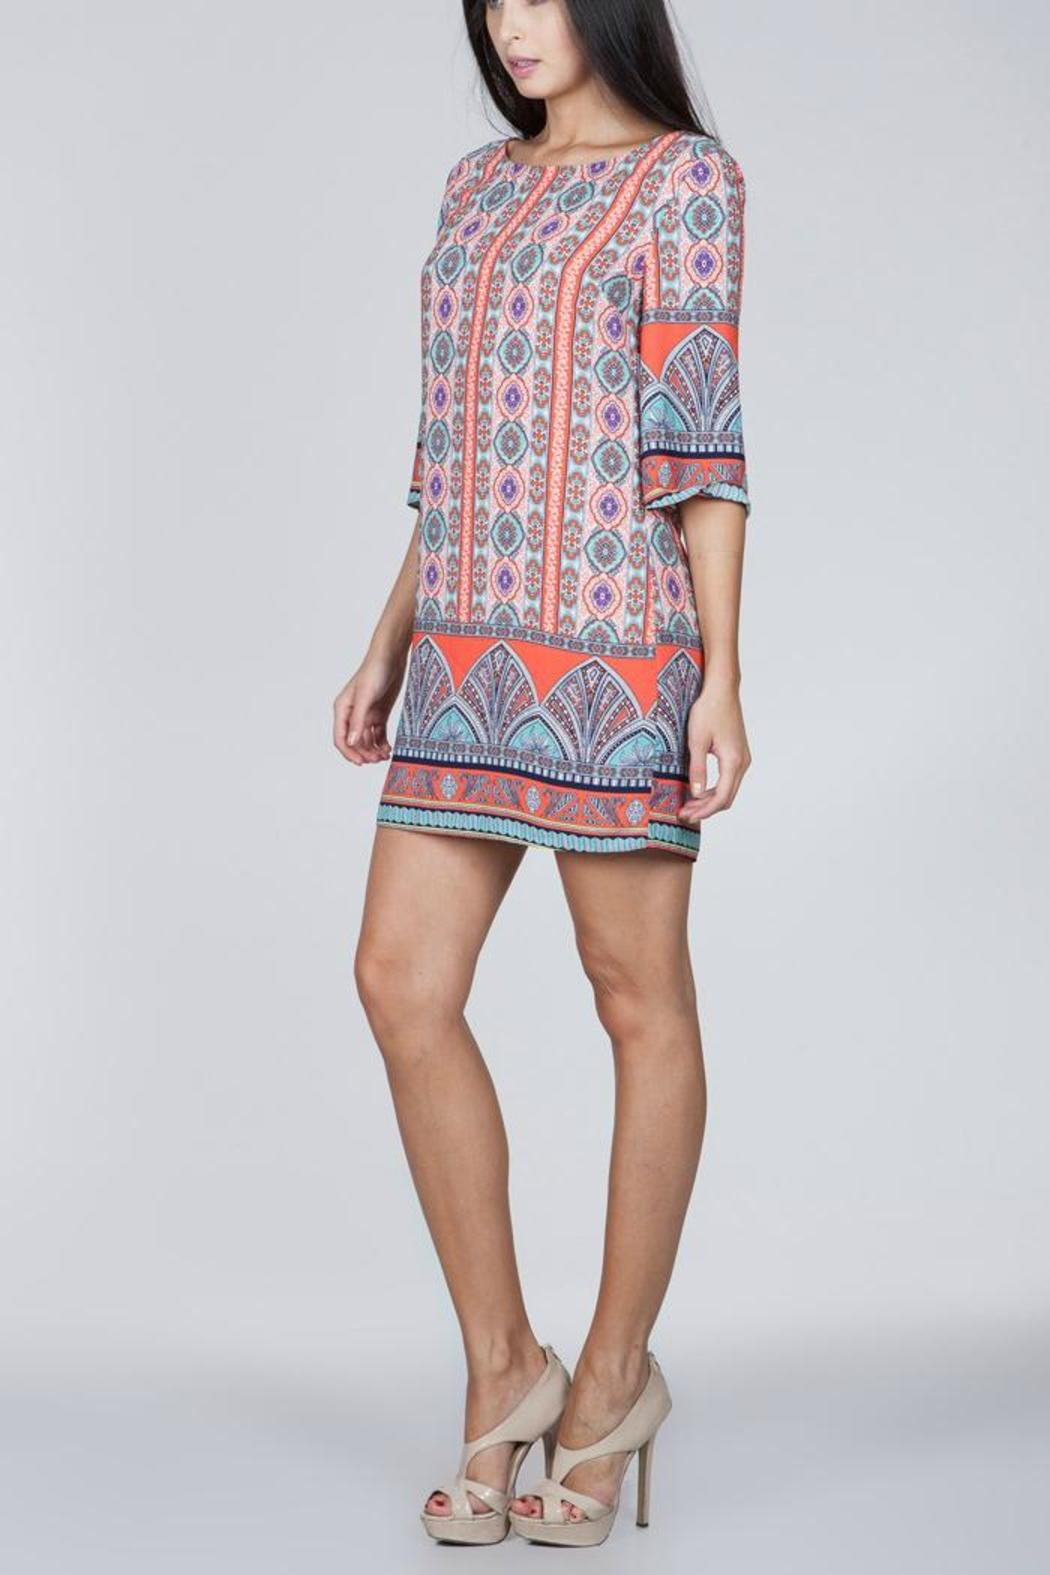 Ark & Co. Coral Printed Dress - Front Full Image